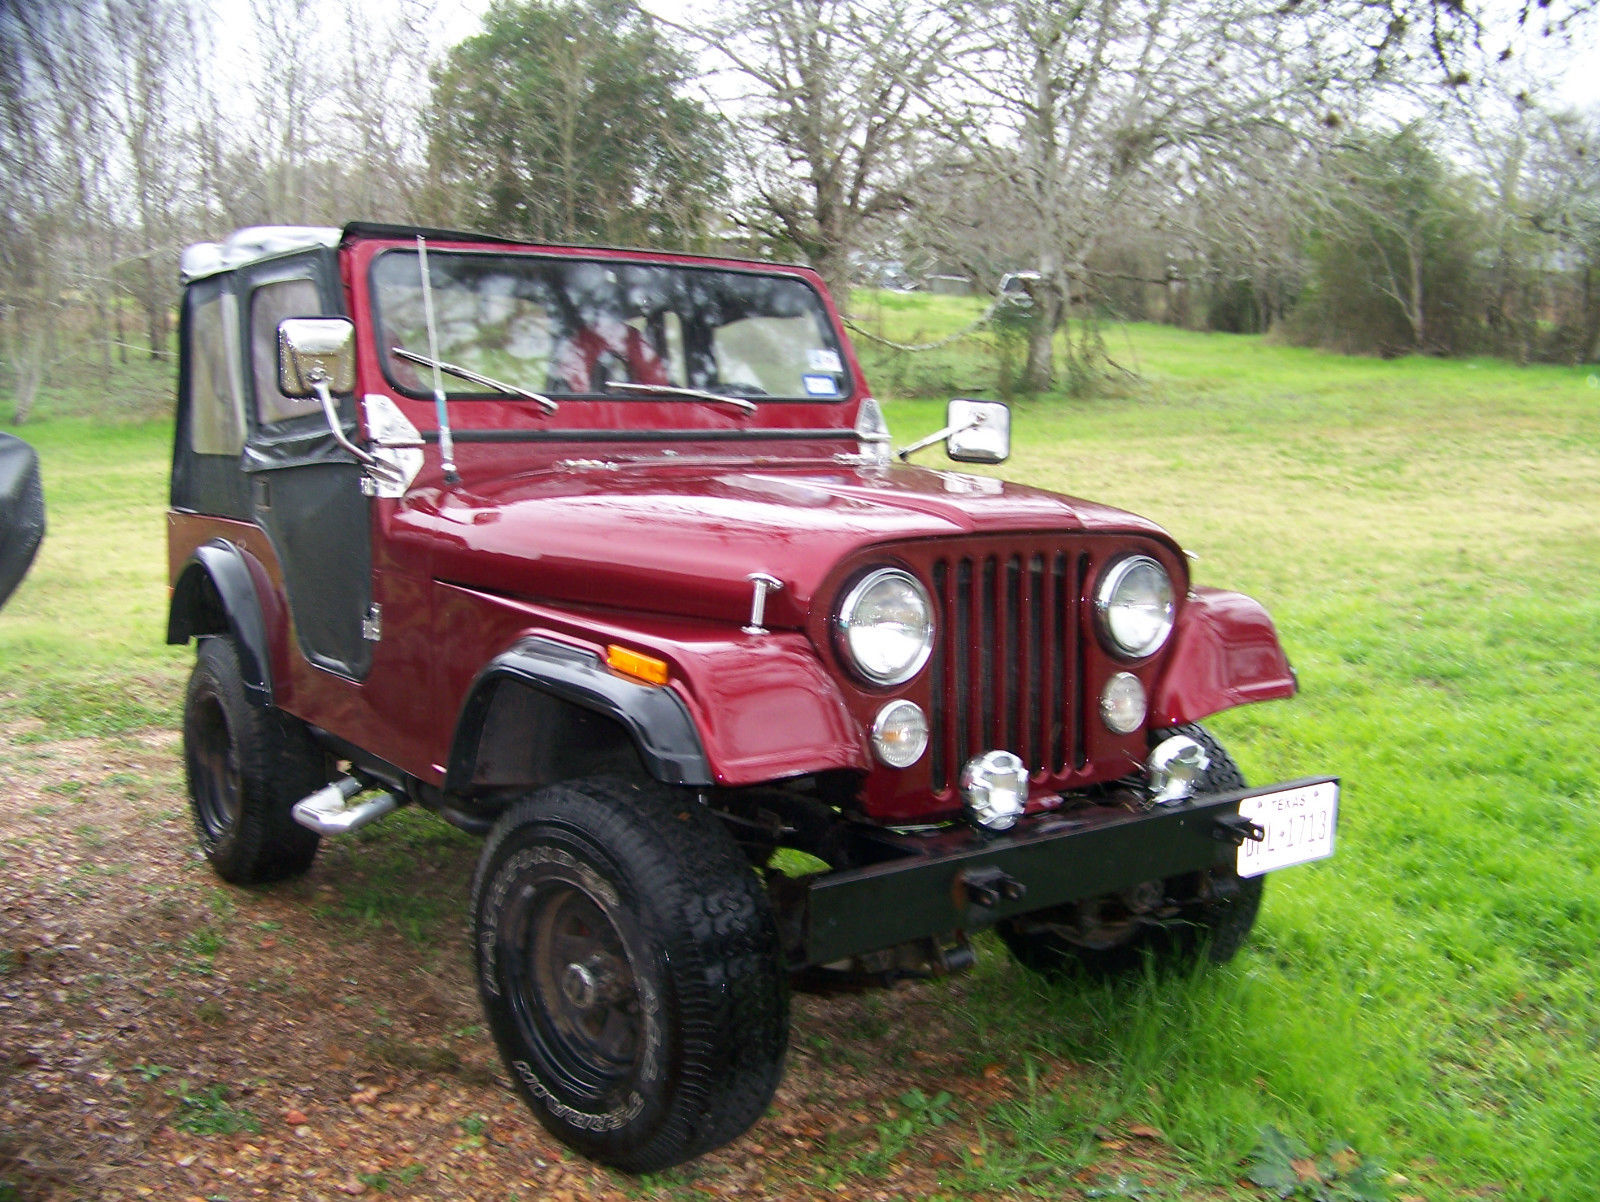 Jeep cj 1978 - 4 speed 318 v-8 -4x4 fold down top moron for sale in